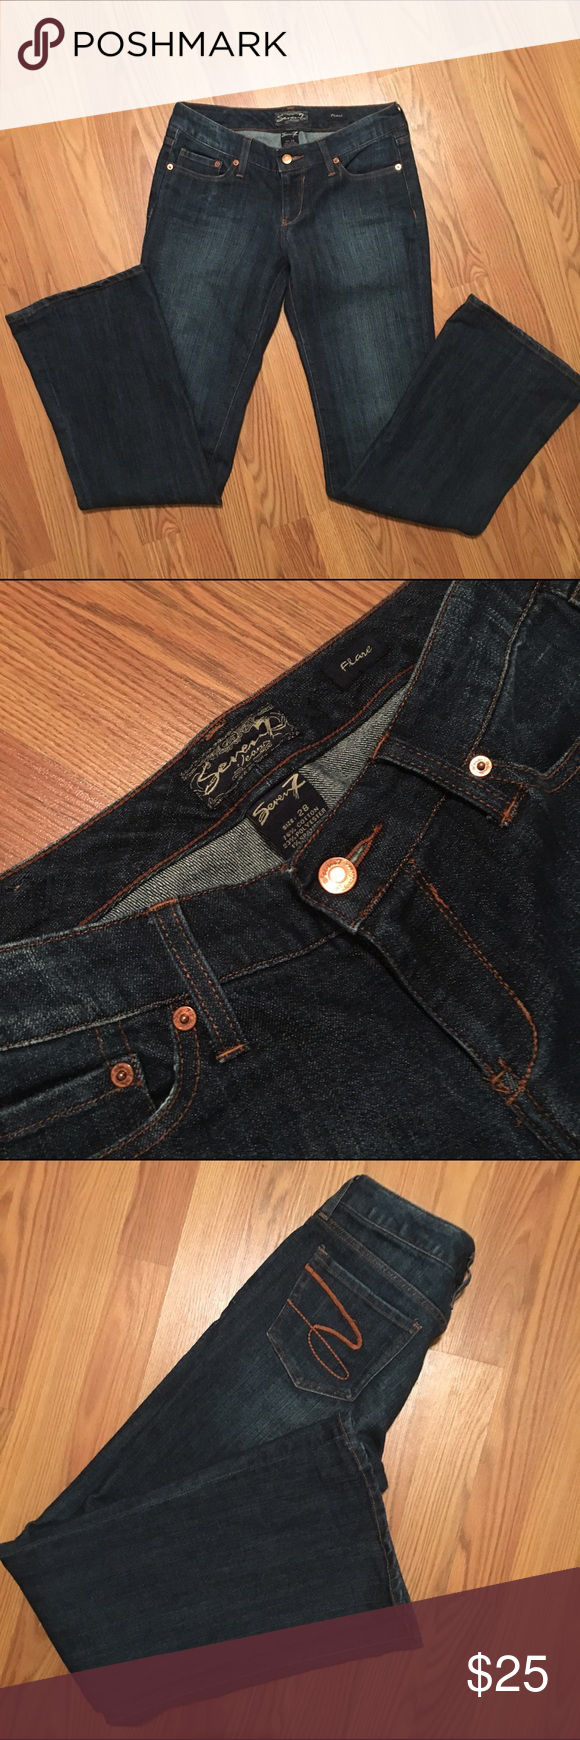 Seven 7 jeans from express never worn These jeans from express have never been worn, are a dark wash with a little bit of flare, and are a size 28. Seven7 Jeans Flare & Wide Leg